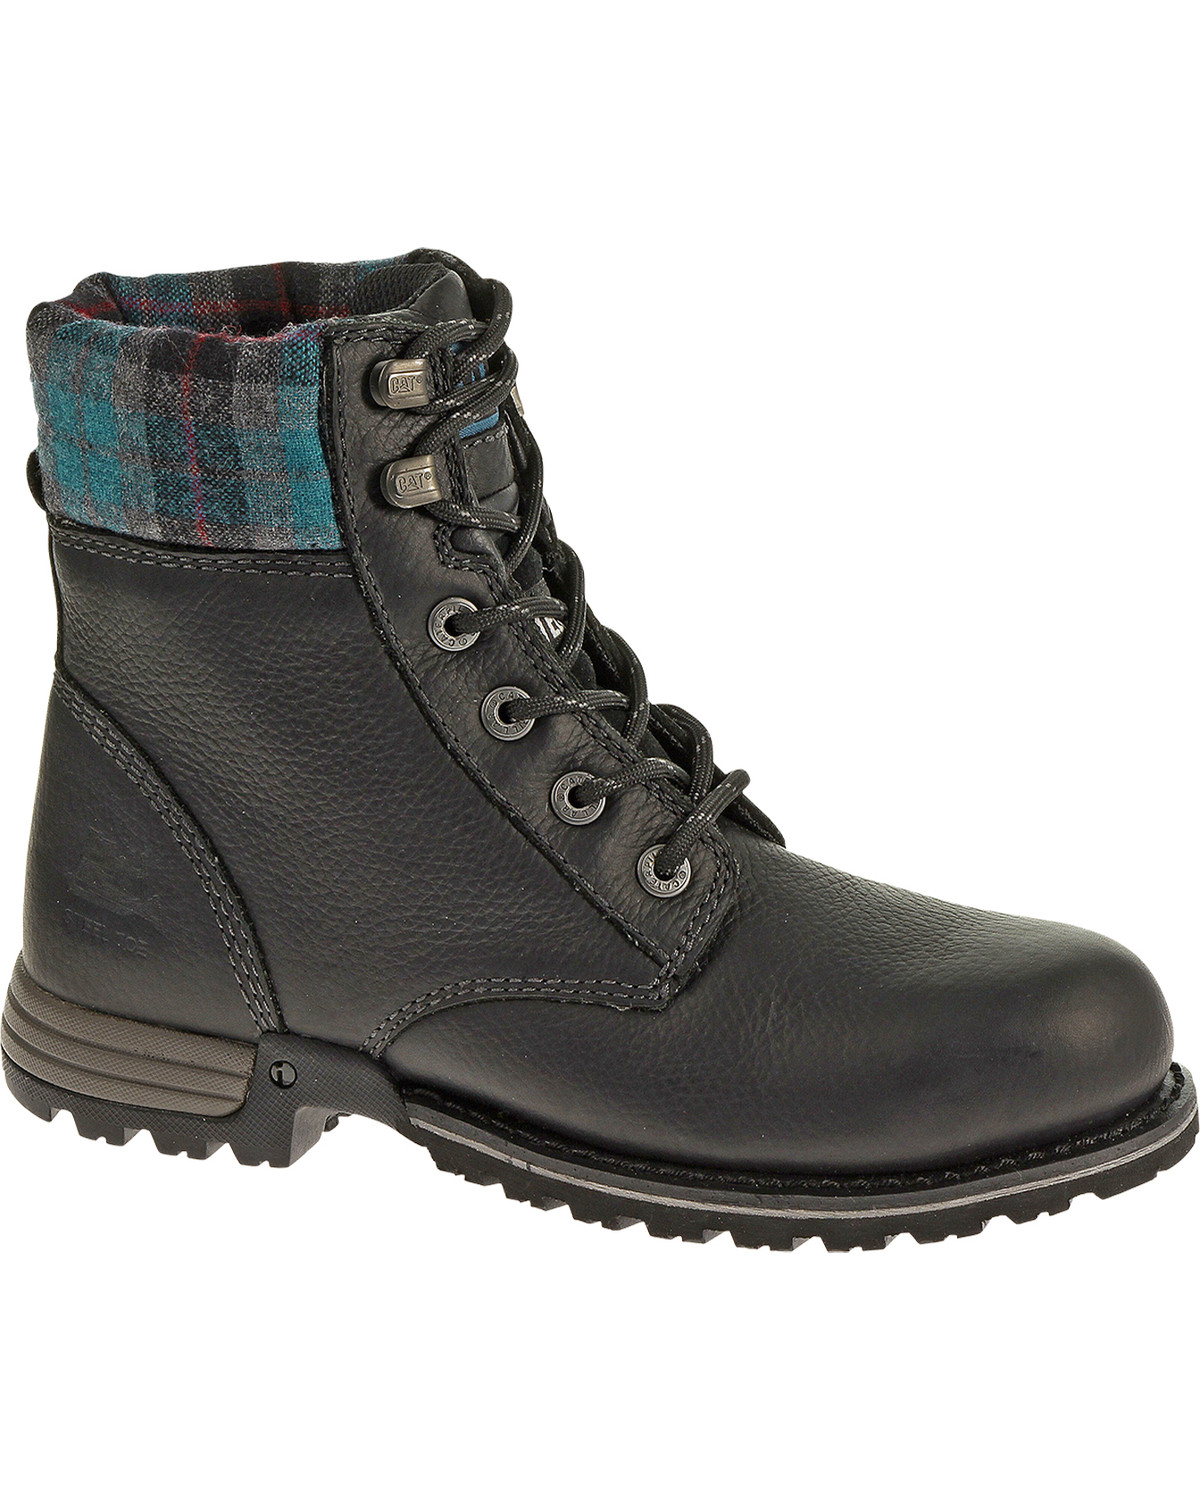 Caterpillar Womens Kenzie Work Boots Steel Toe Boot Barn